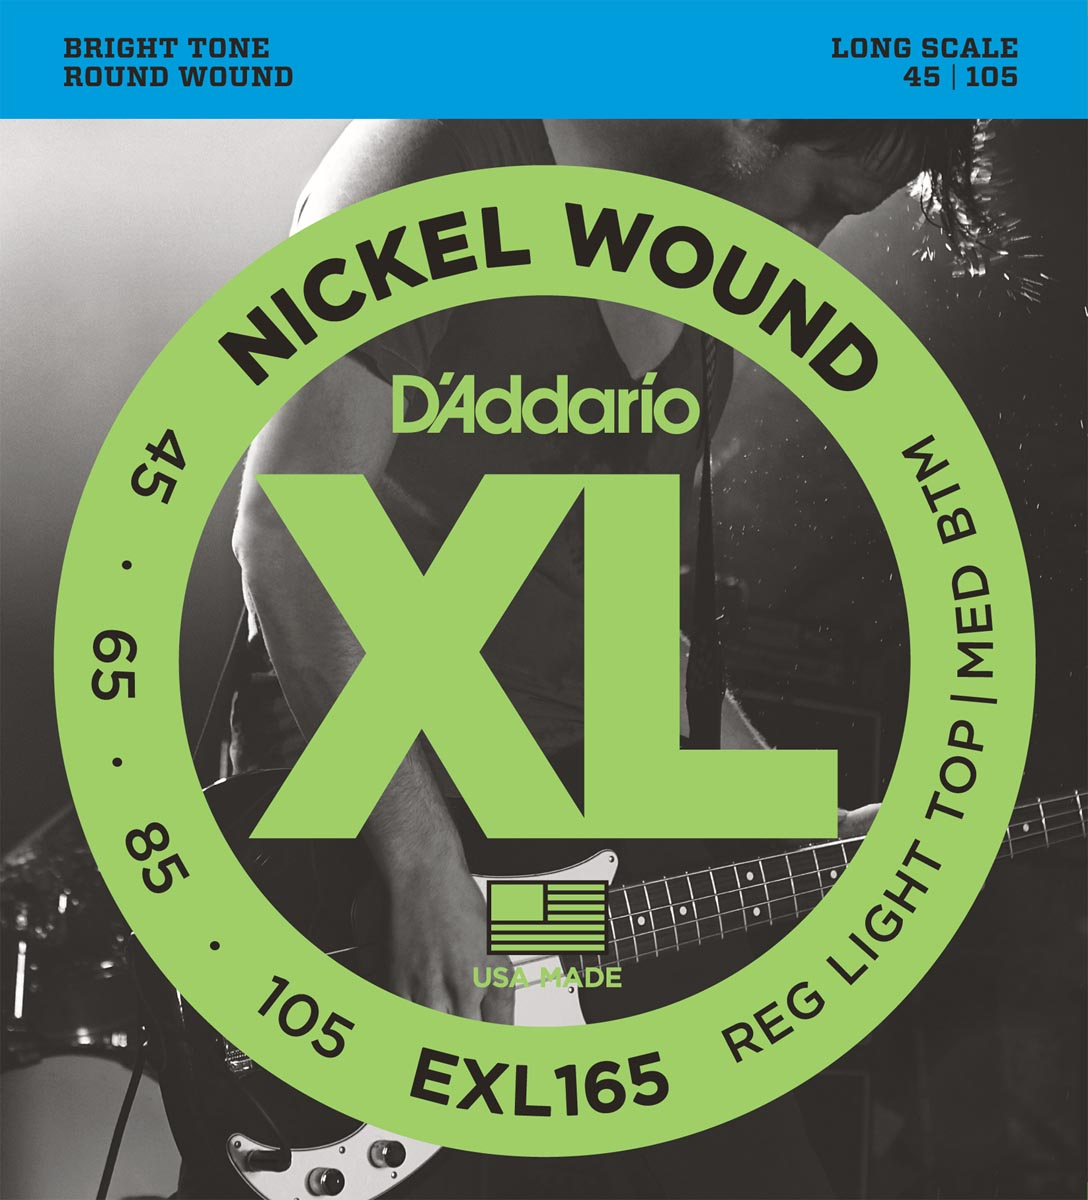 DADDARIO EXL165 LONG SCALE [45-105]